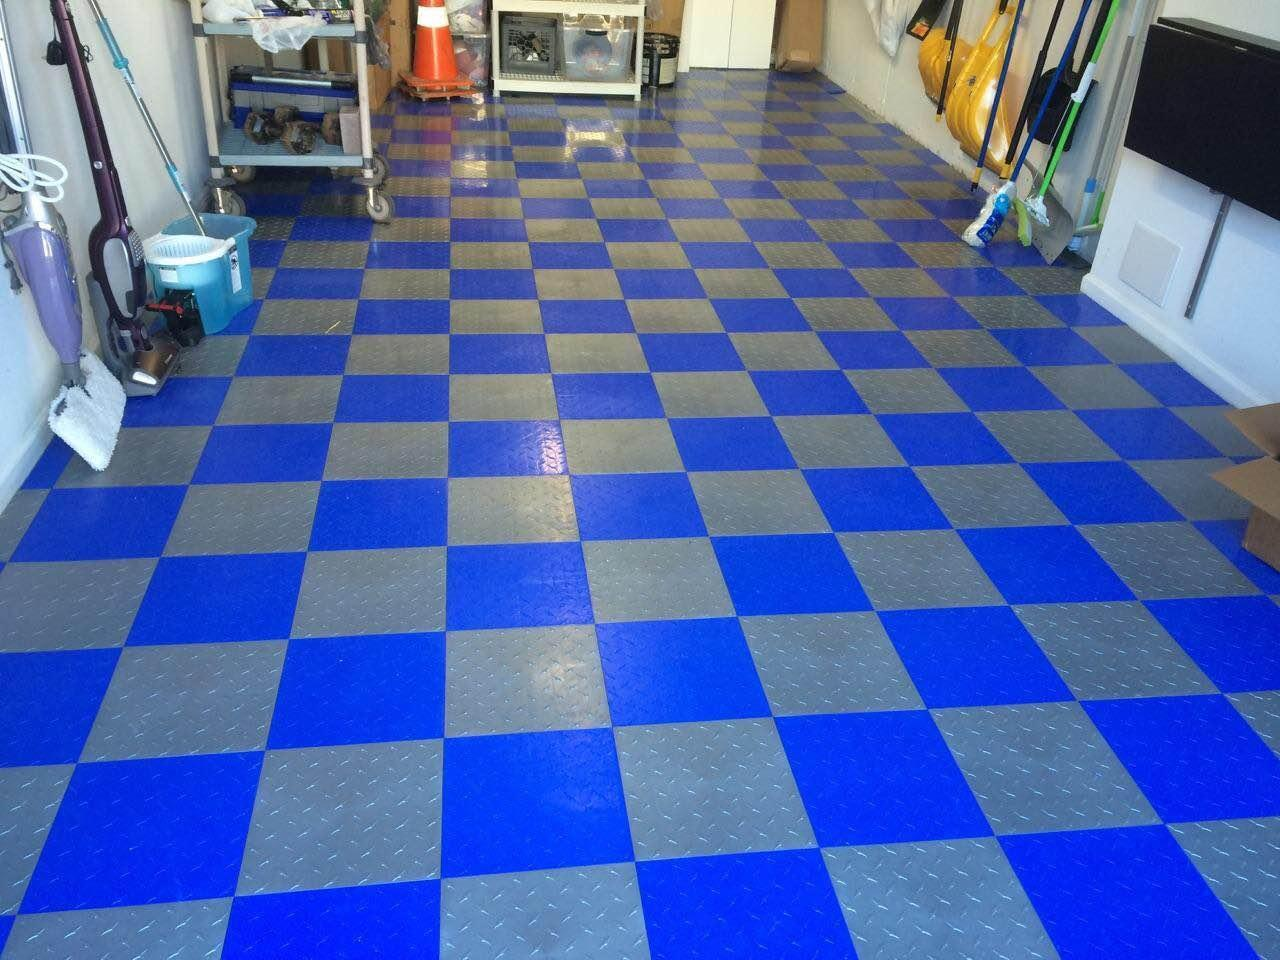 Amazon speedway garage tile interlocking